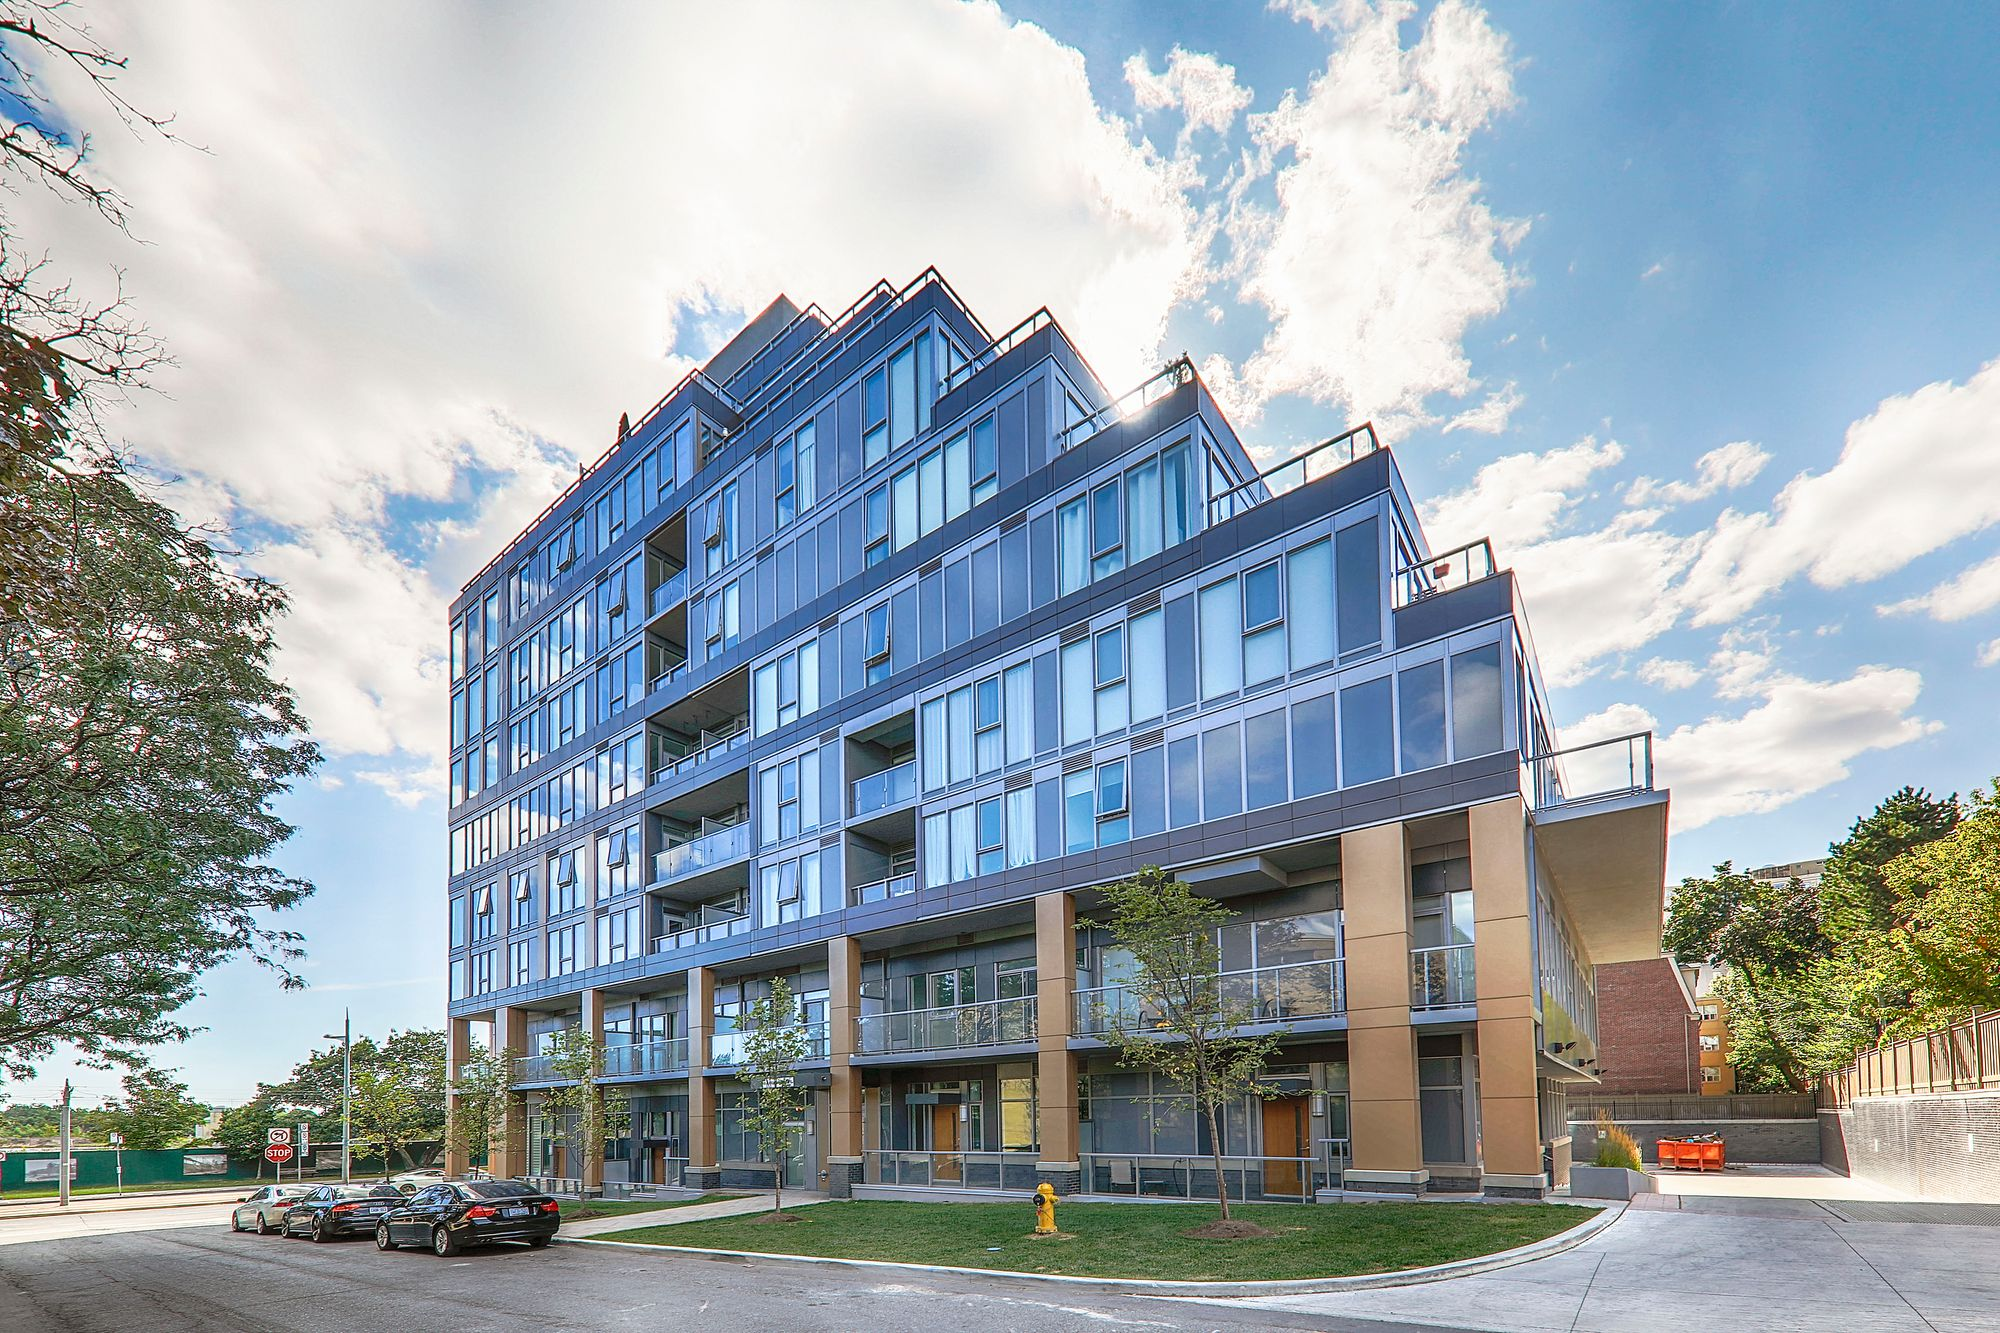 The Code Condos at 6 Parkwood Ave. This condo is located in  Midtown, Toronto - image #1 of 5 by Strata.ca